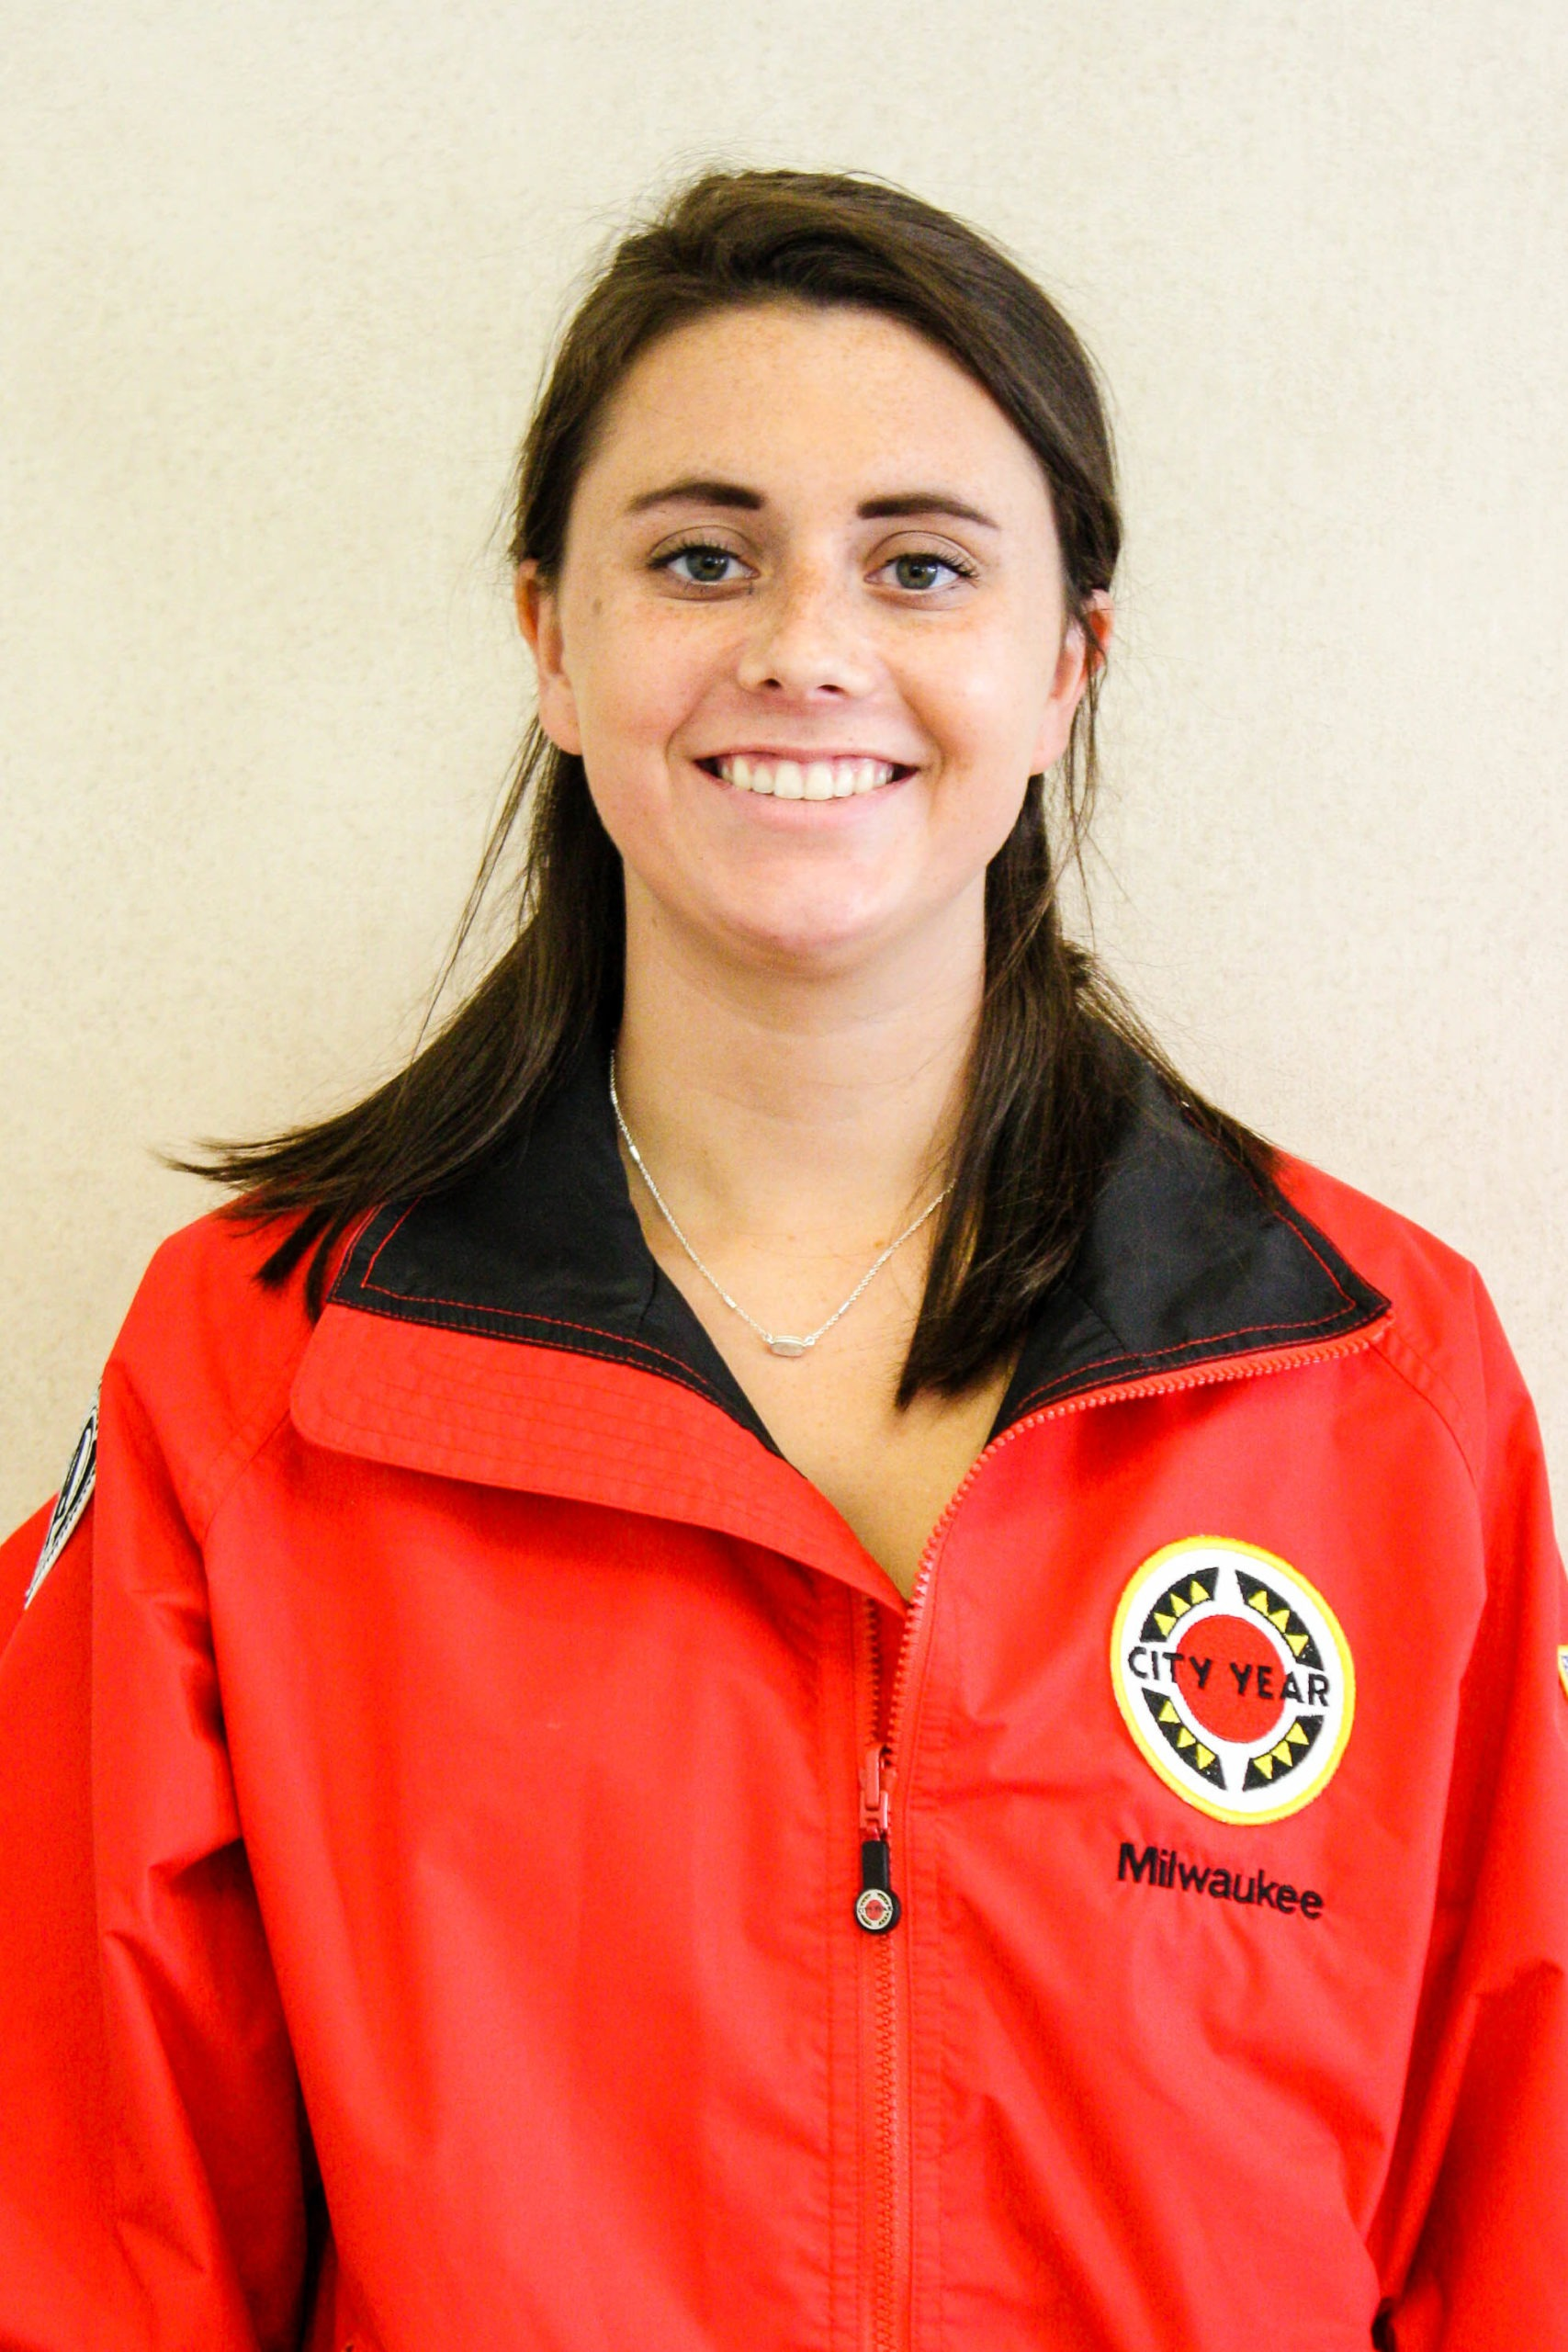 City Year Milwaukee AmeriCorps member